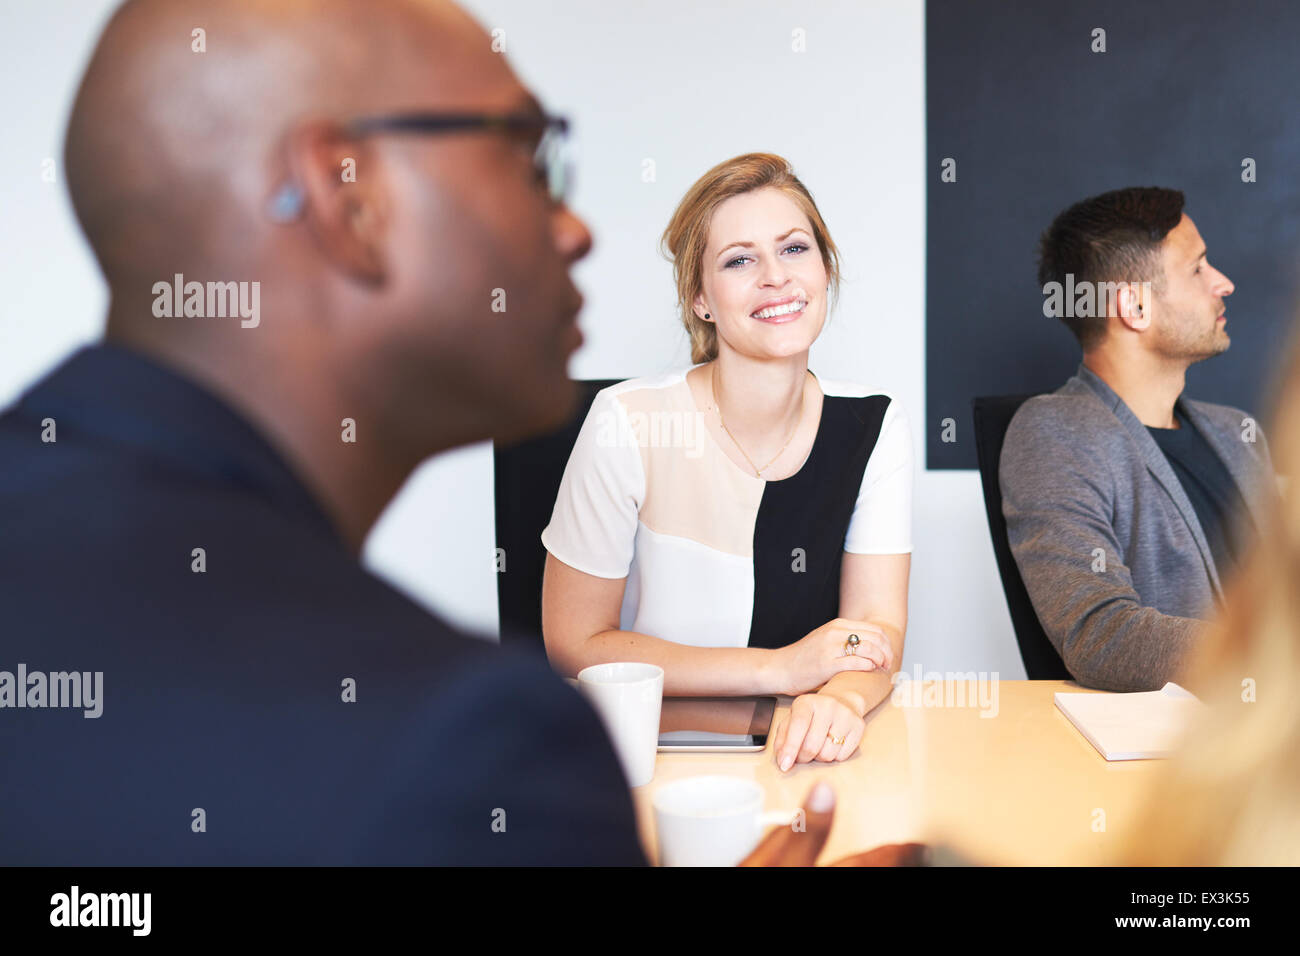 White female executive smiling at camera during a work meeting. - Stock Image